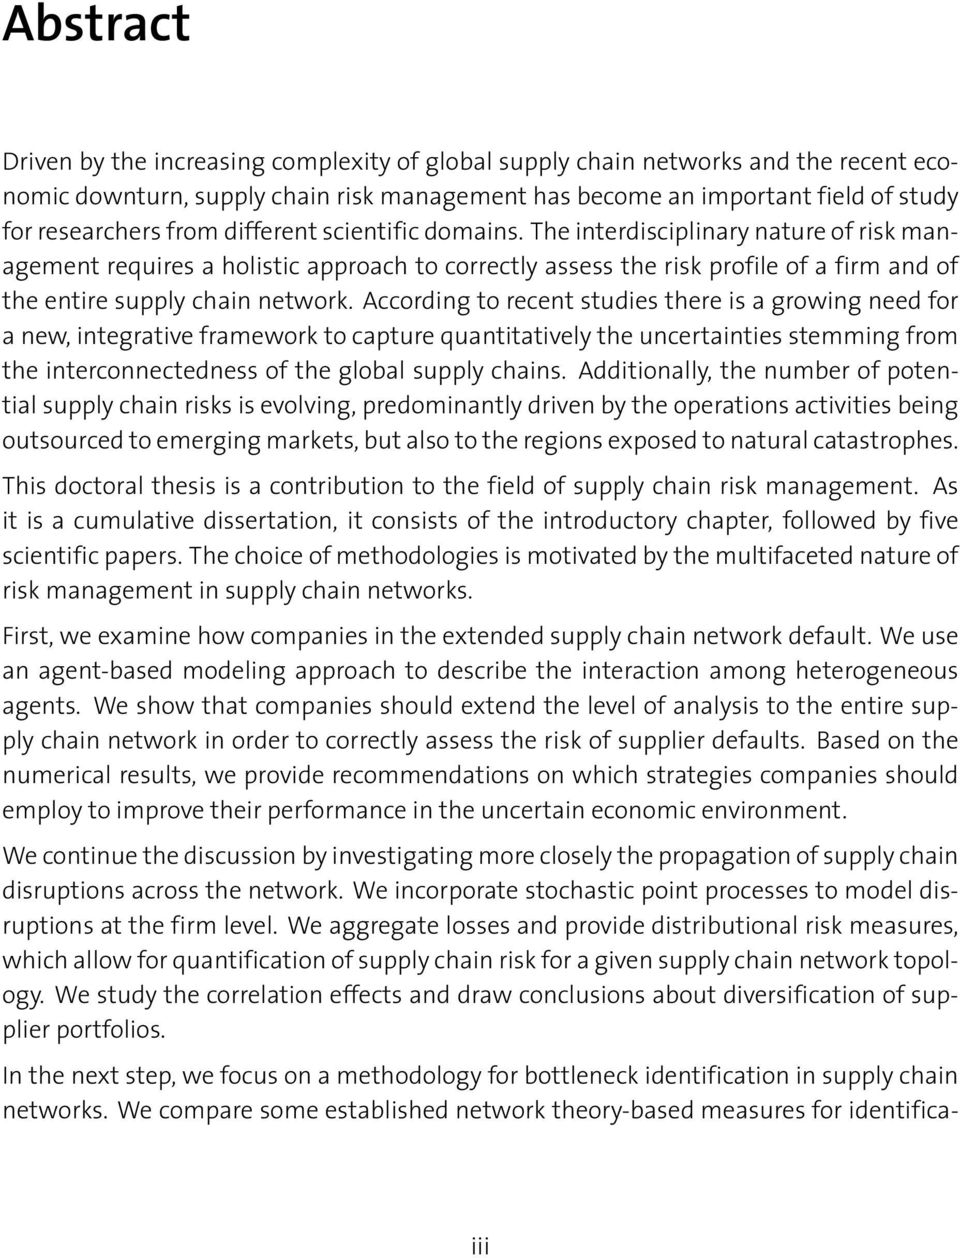 According to recent studies there is a growing need for a new, integrative framework to capture quantitatively the uncertainties stemming from the interconnectedness of the global supply chains.